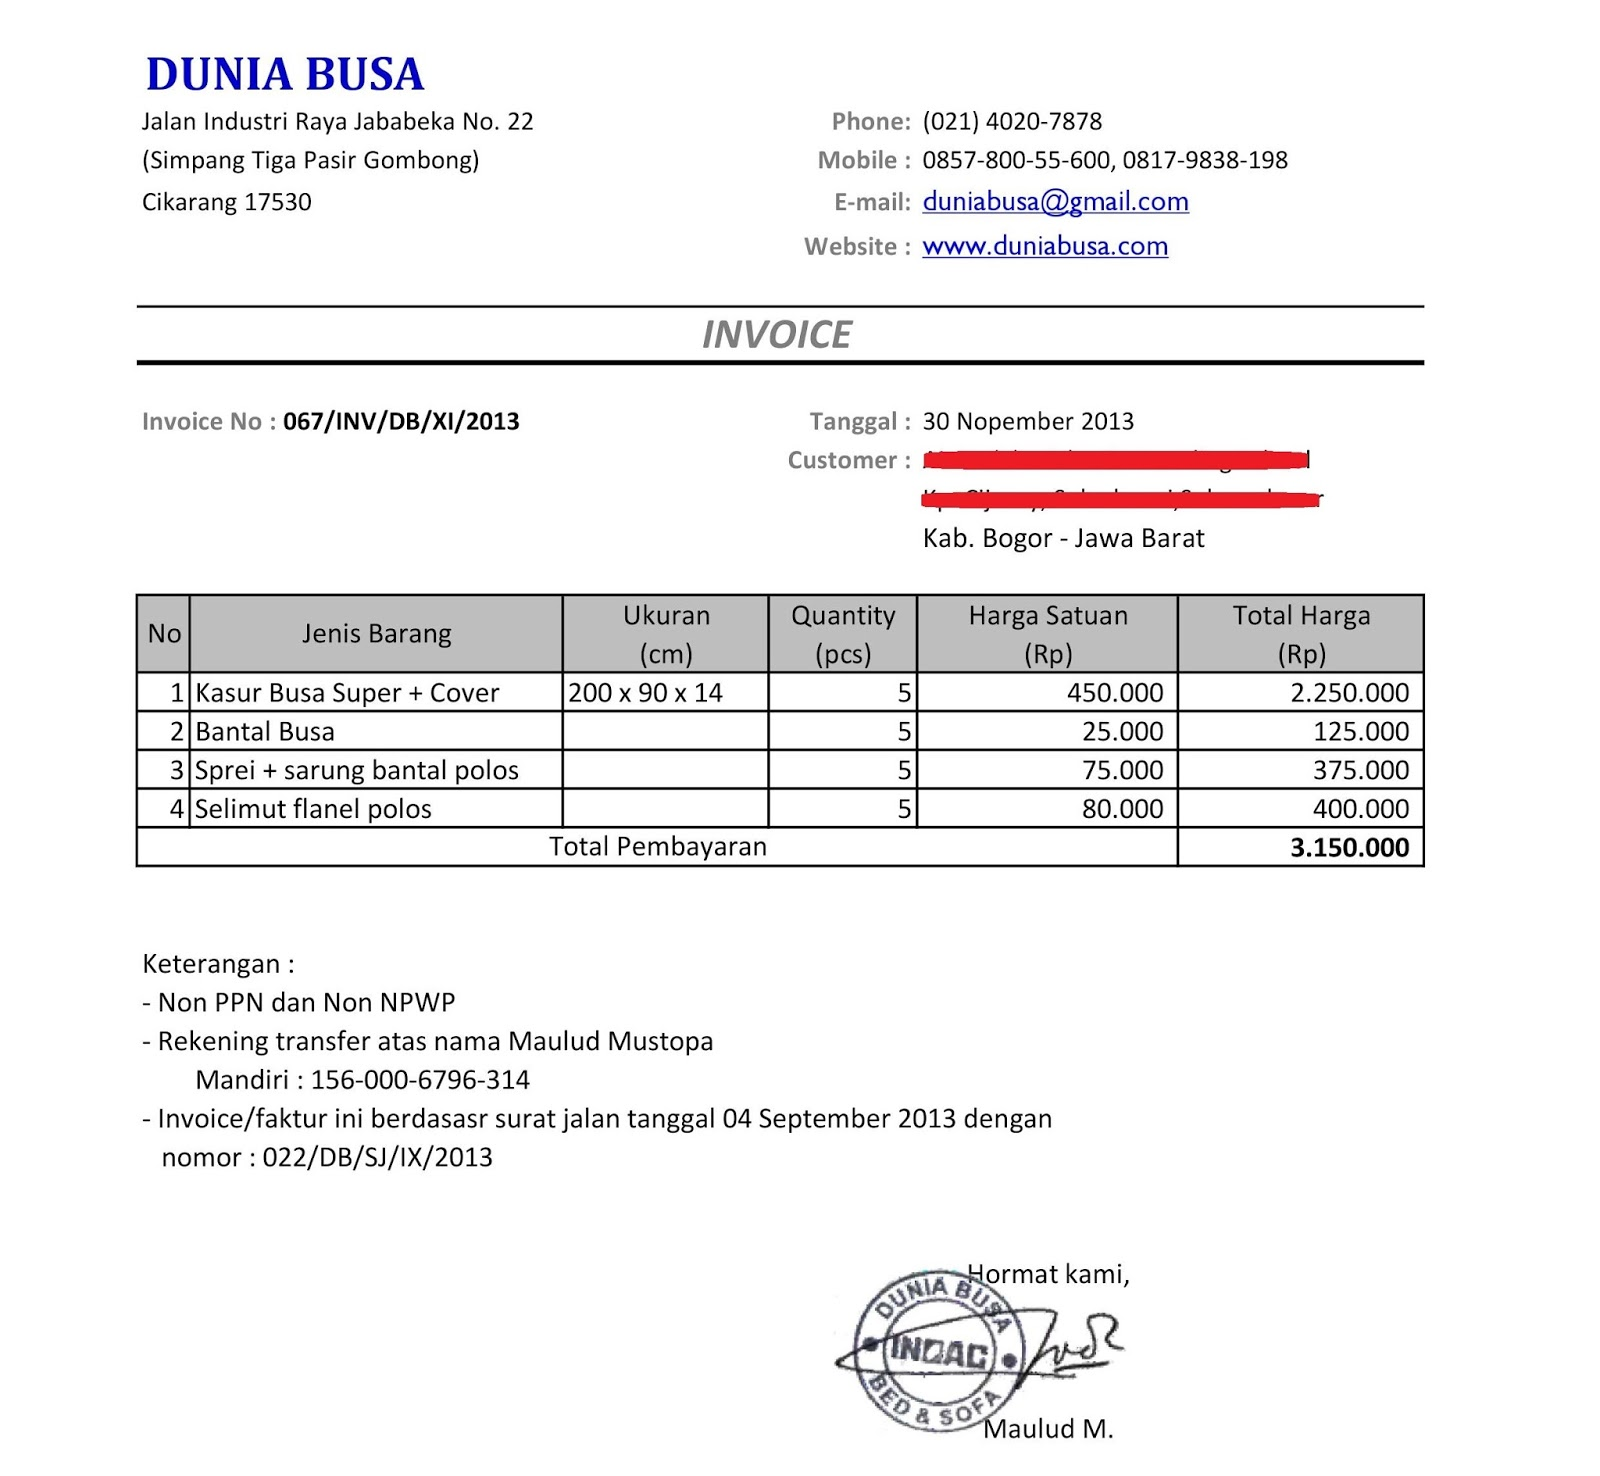 Darkfaderus  Unique Free Invoice Online  Create Invoice Online  Invoice Template  With Goodlooking Contoh Format Invoice Atau Surat Tagihan  Brankas Arsip  Free Invoice Online With Divine Hospital Invoice Also Basic Invoice Pdf In Addition How To Create And Invoice And Track Invoice As Well As Blank Invoice Pdf Download Free Additionally Xero Invoice Template From Sklepco With Darkfaderus  Goodlooking Free Invoice Online  Create Invoice Online  Invoice Template  With Divine Contoh Format Invoice Atau Surat Tagihan  Brankas Arsip  Free Invoice Online And Unique Hospital Invoice Also Basic Invoice Pdf In Addition How To Create And Invoice From Sklepco